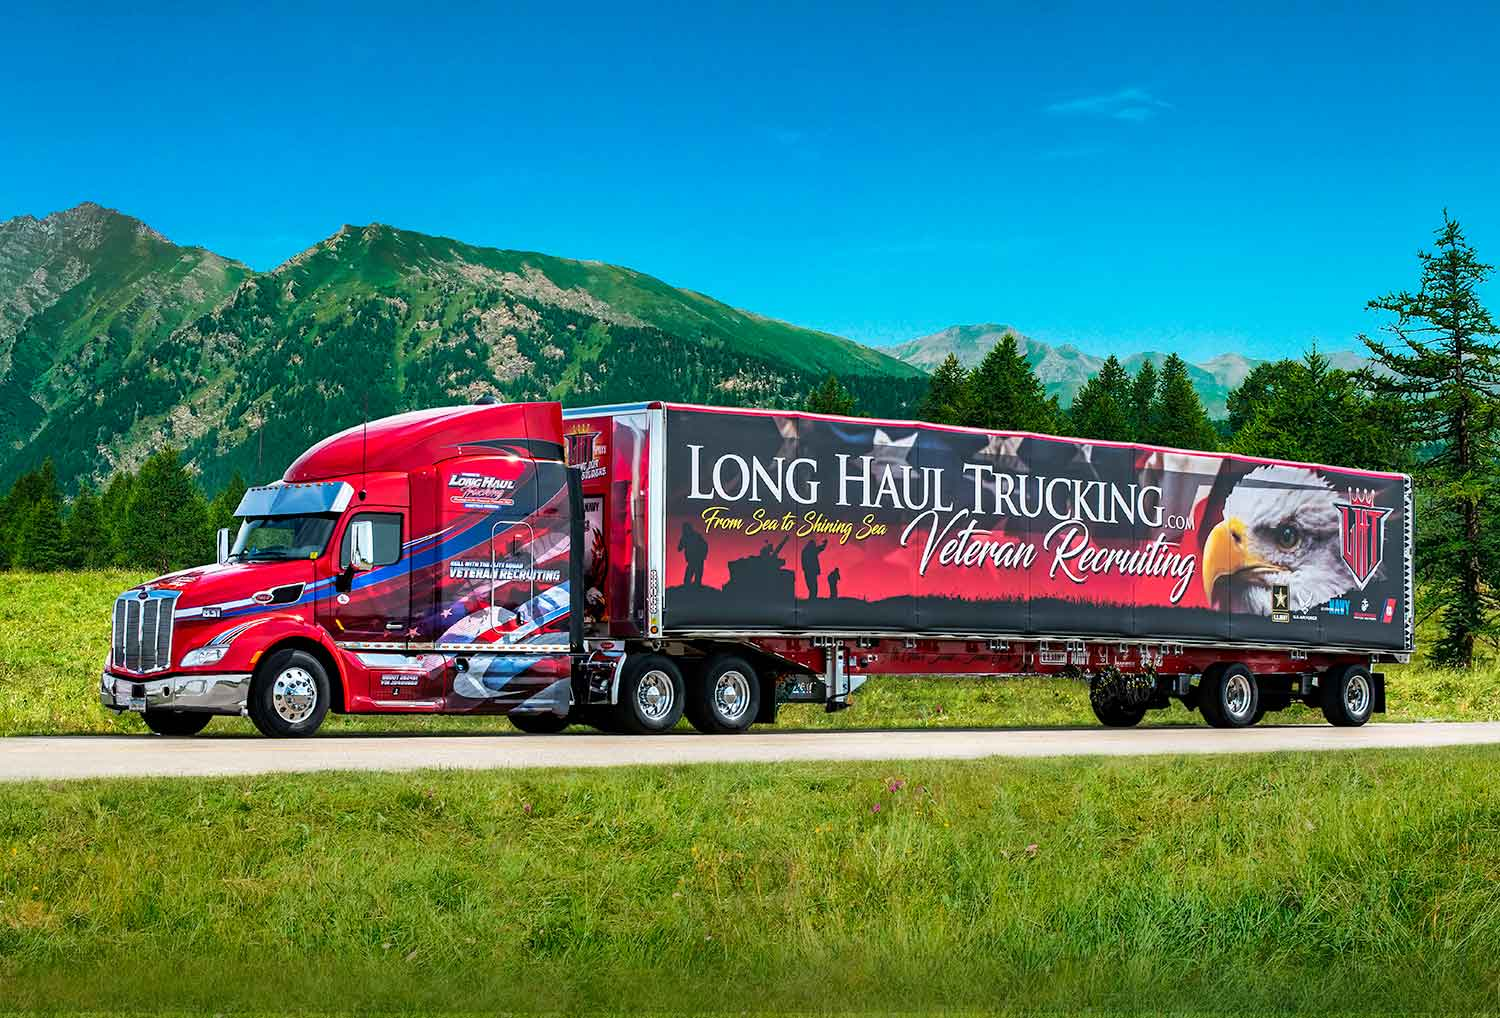 Long Haul Trucking >> LHT - Long Haul Trucking - LHT Long Haul Trucking